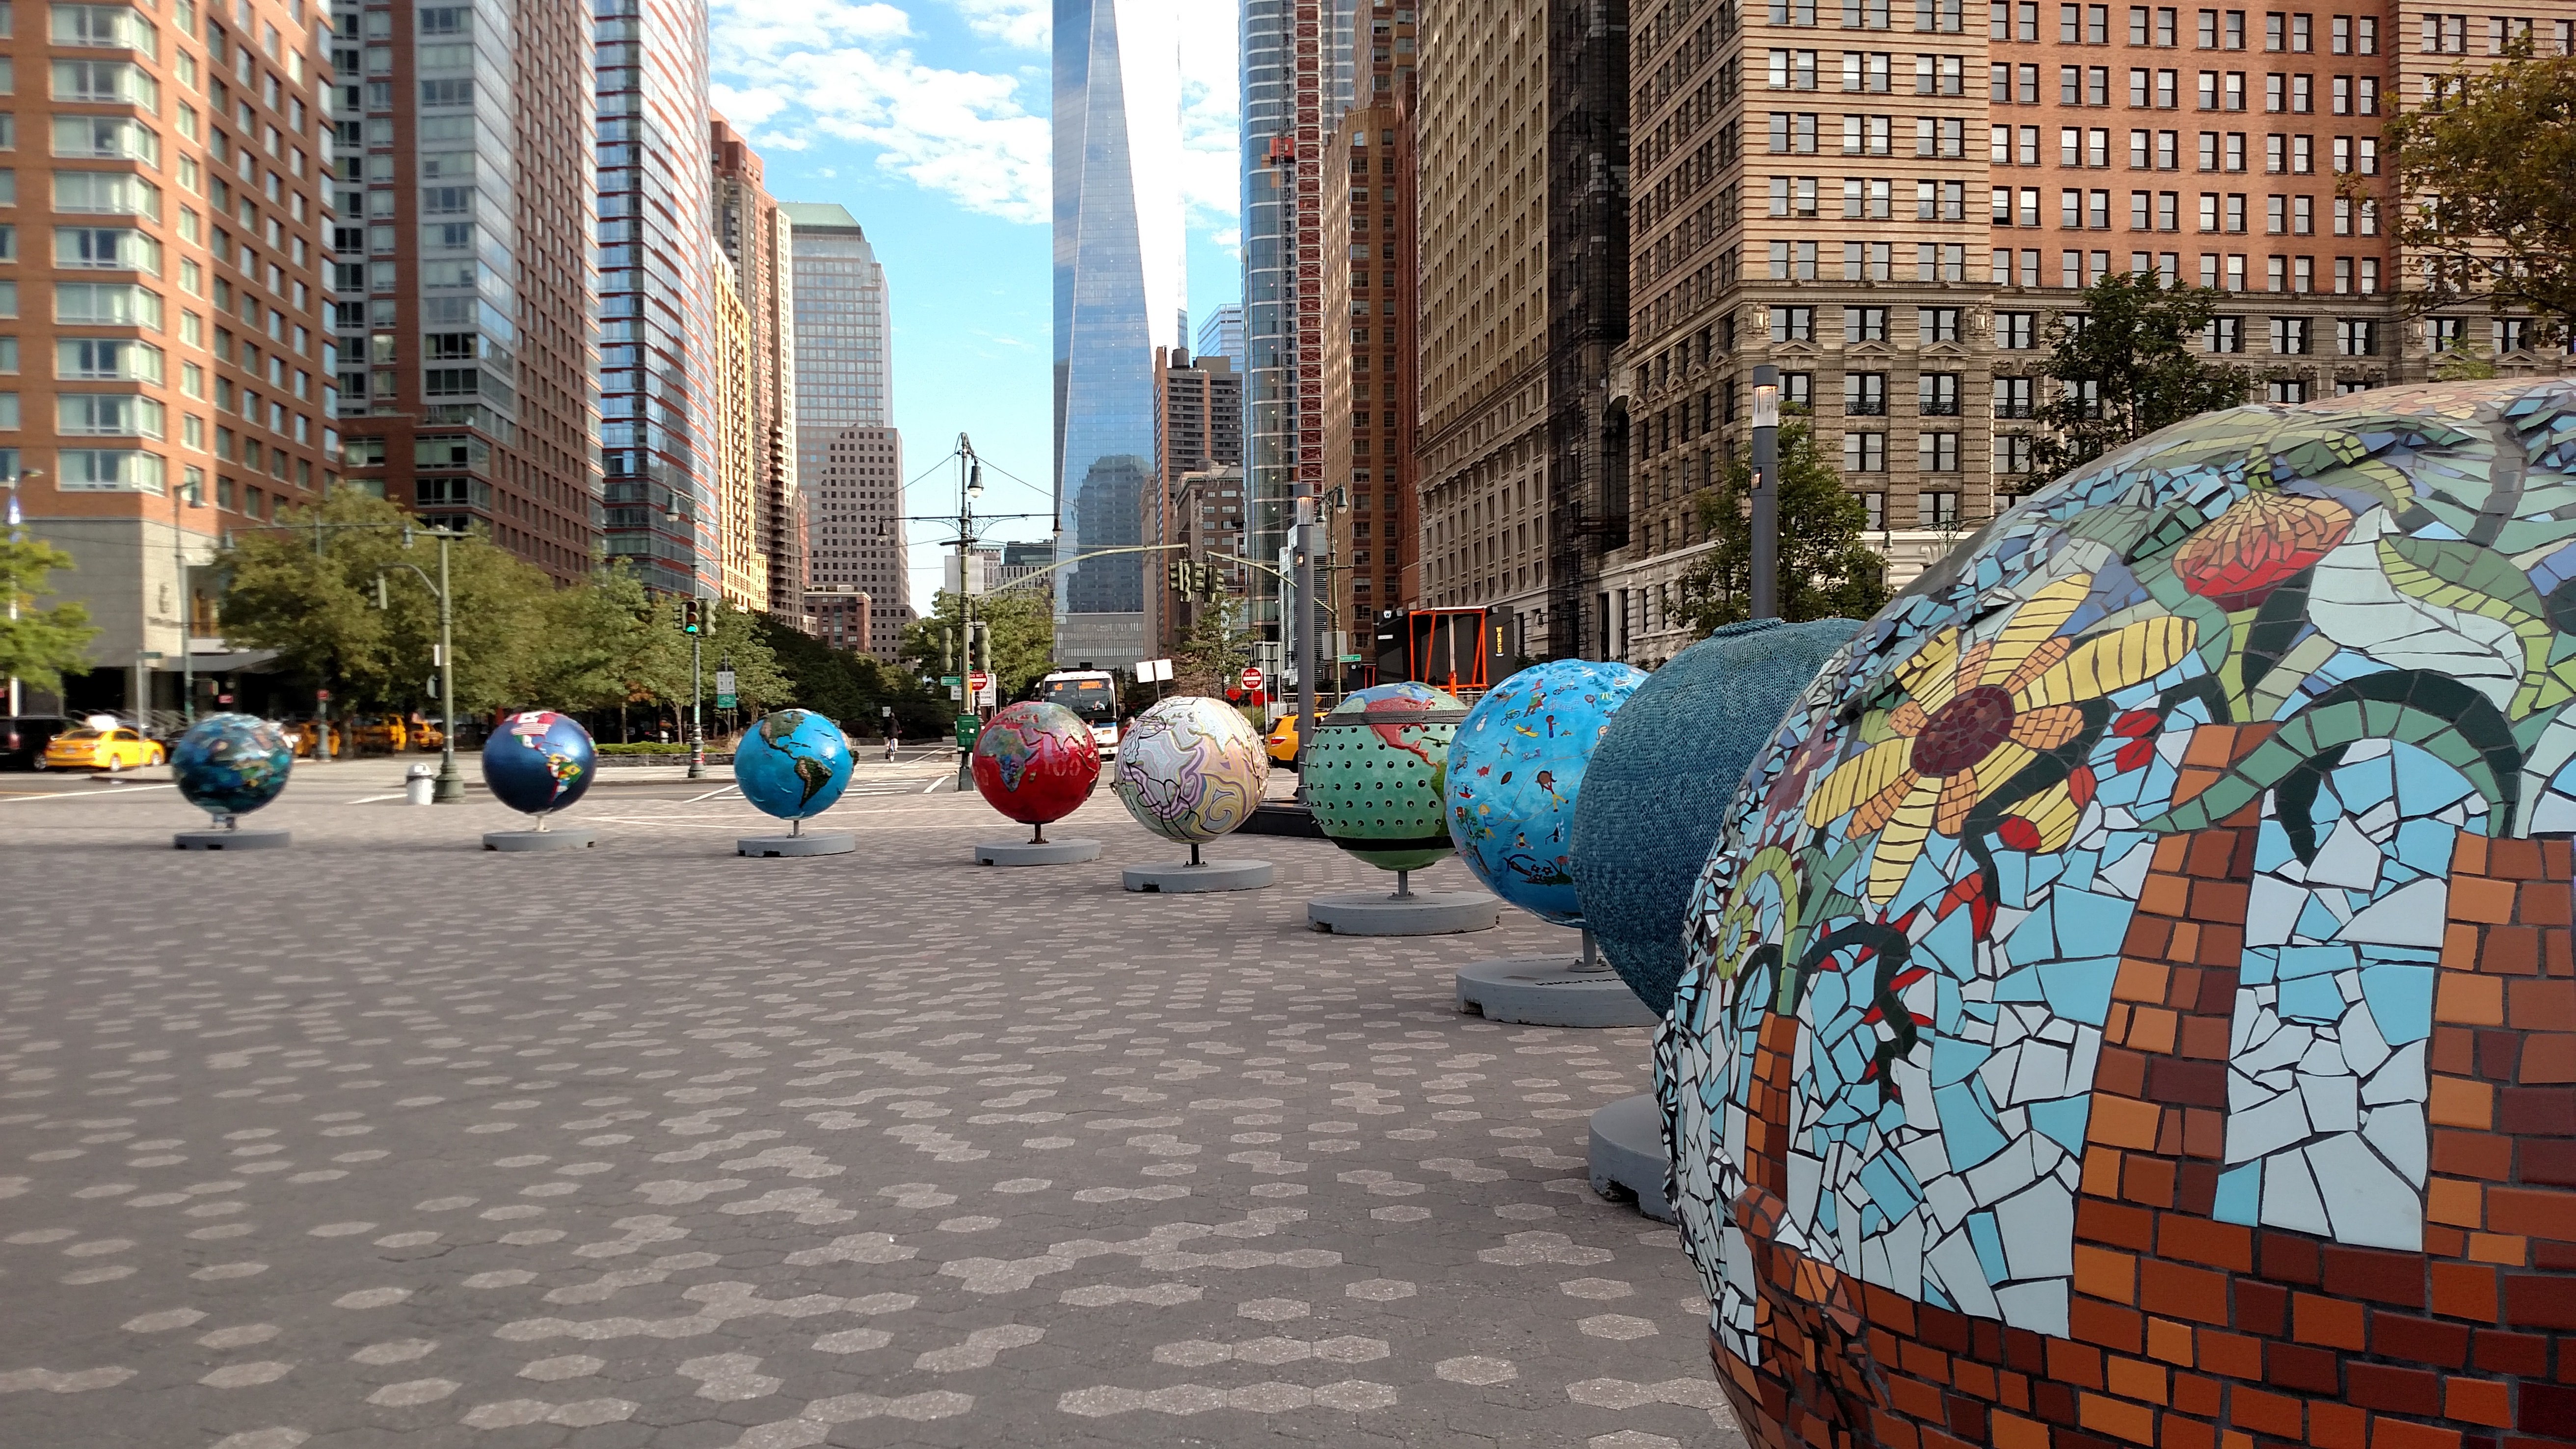 Governor Cuomo Announces Cool Globes Exhibit In Battery Park City